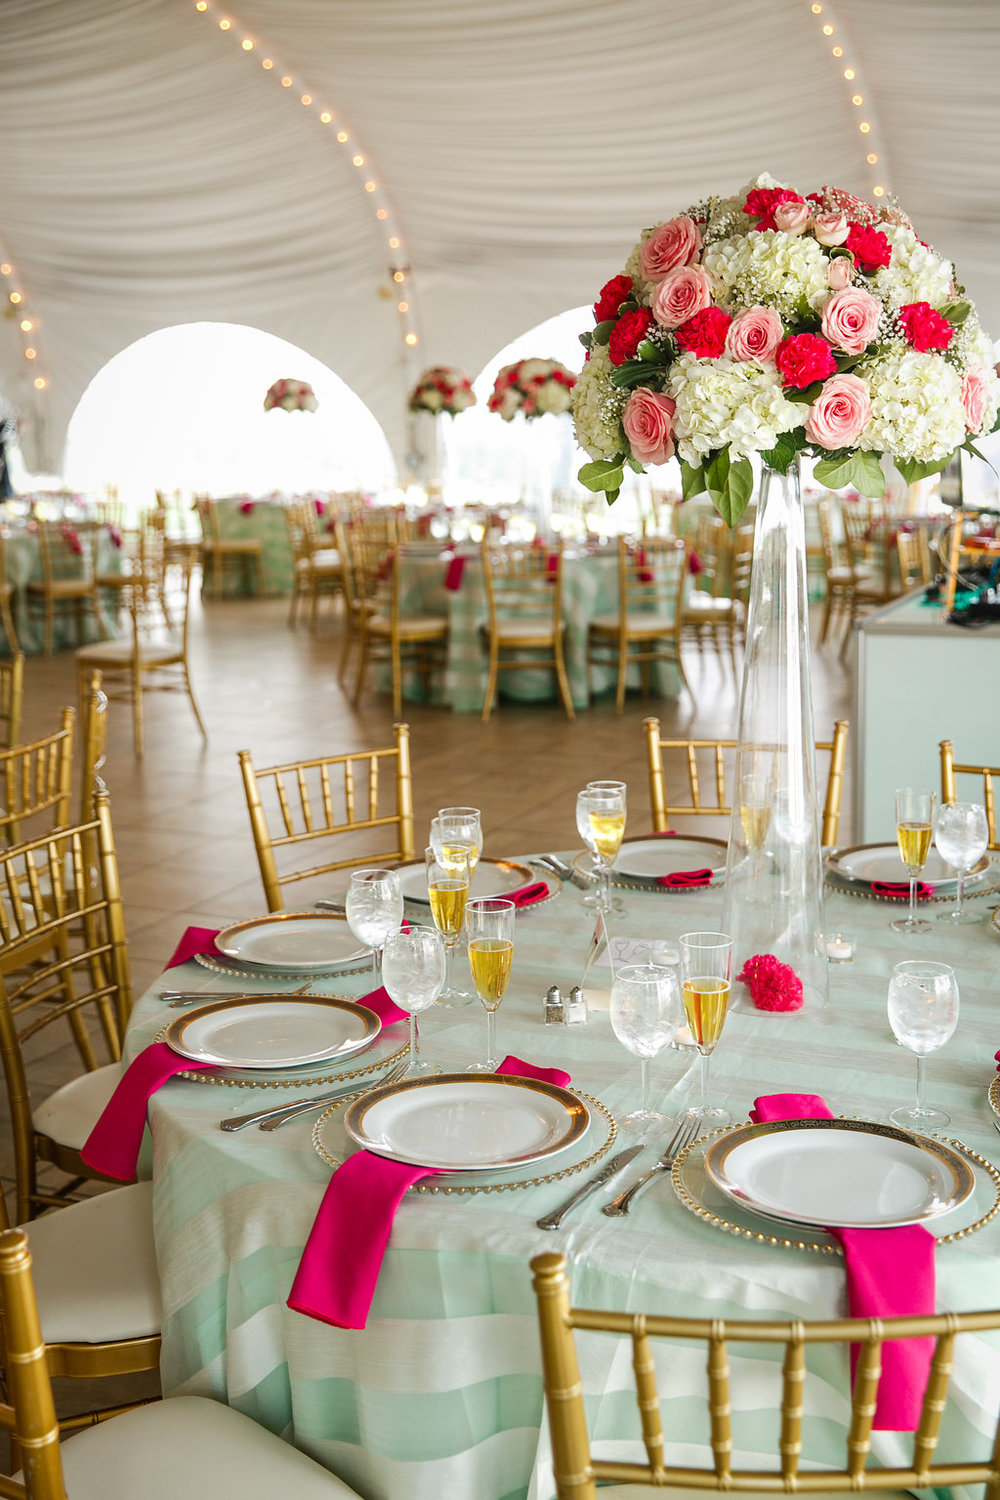 Celebrations-at-the-bay-wedding-reception-decor